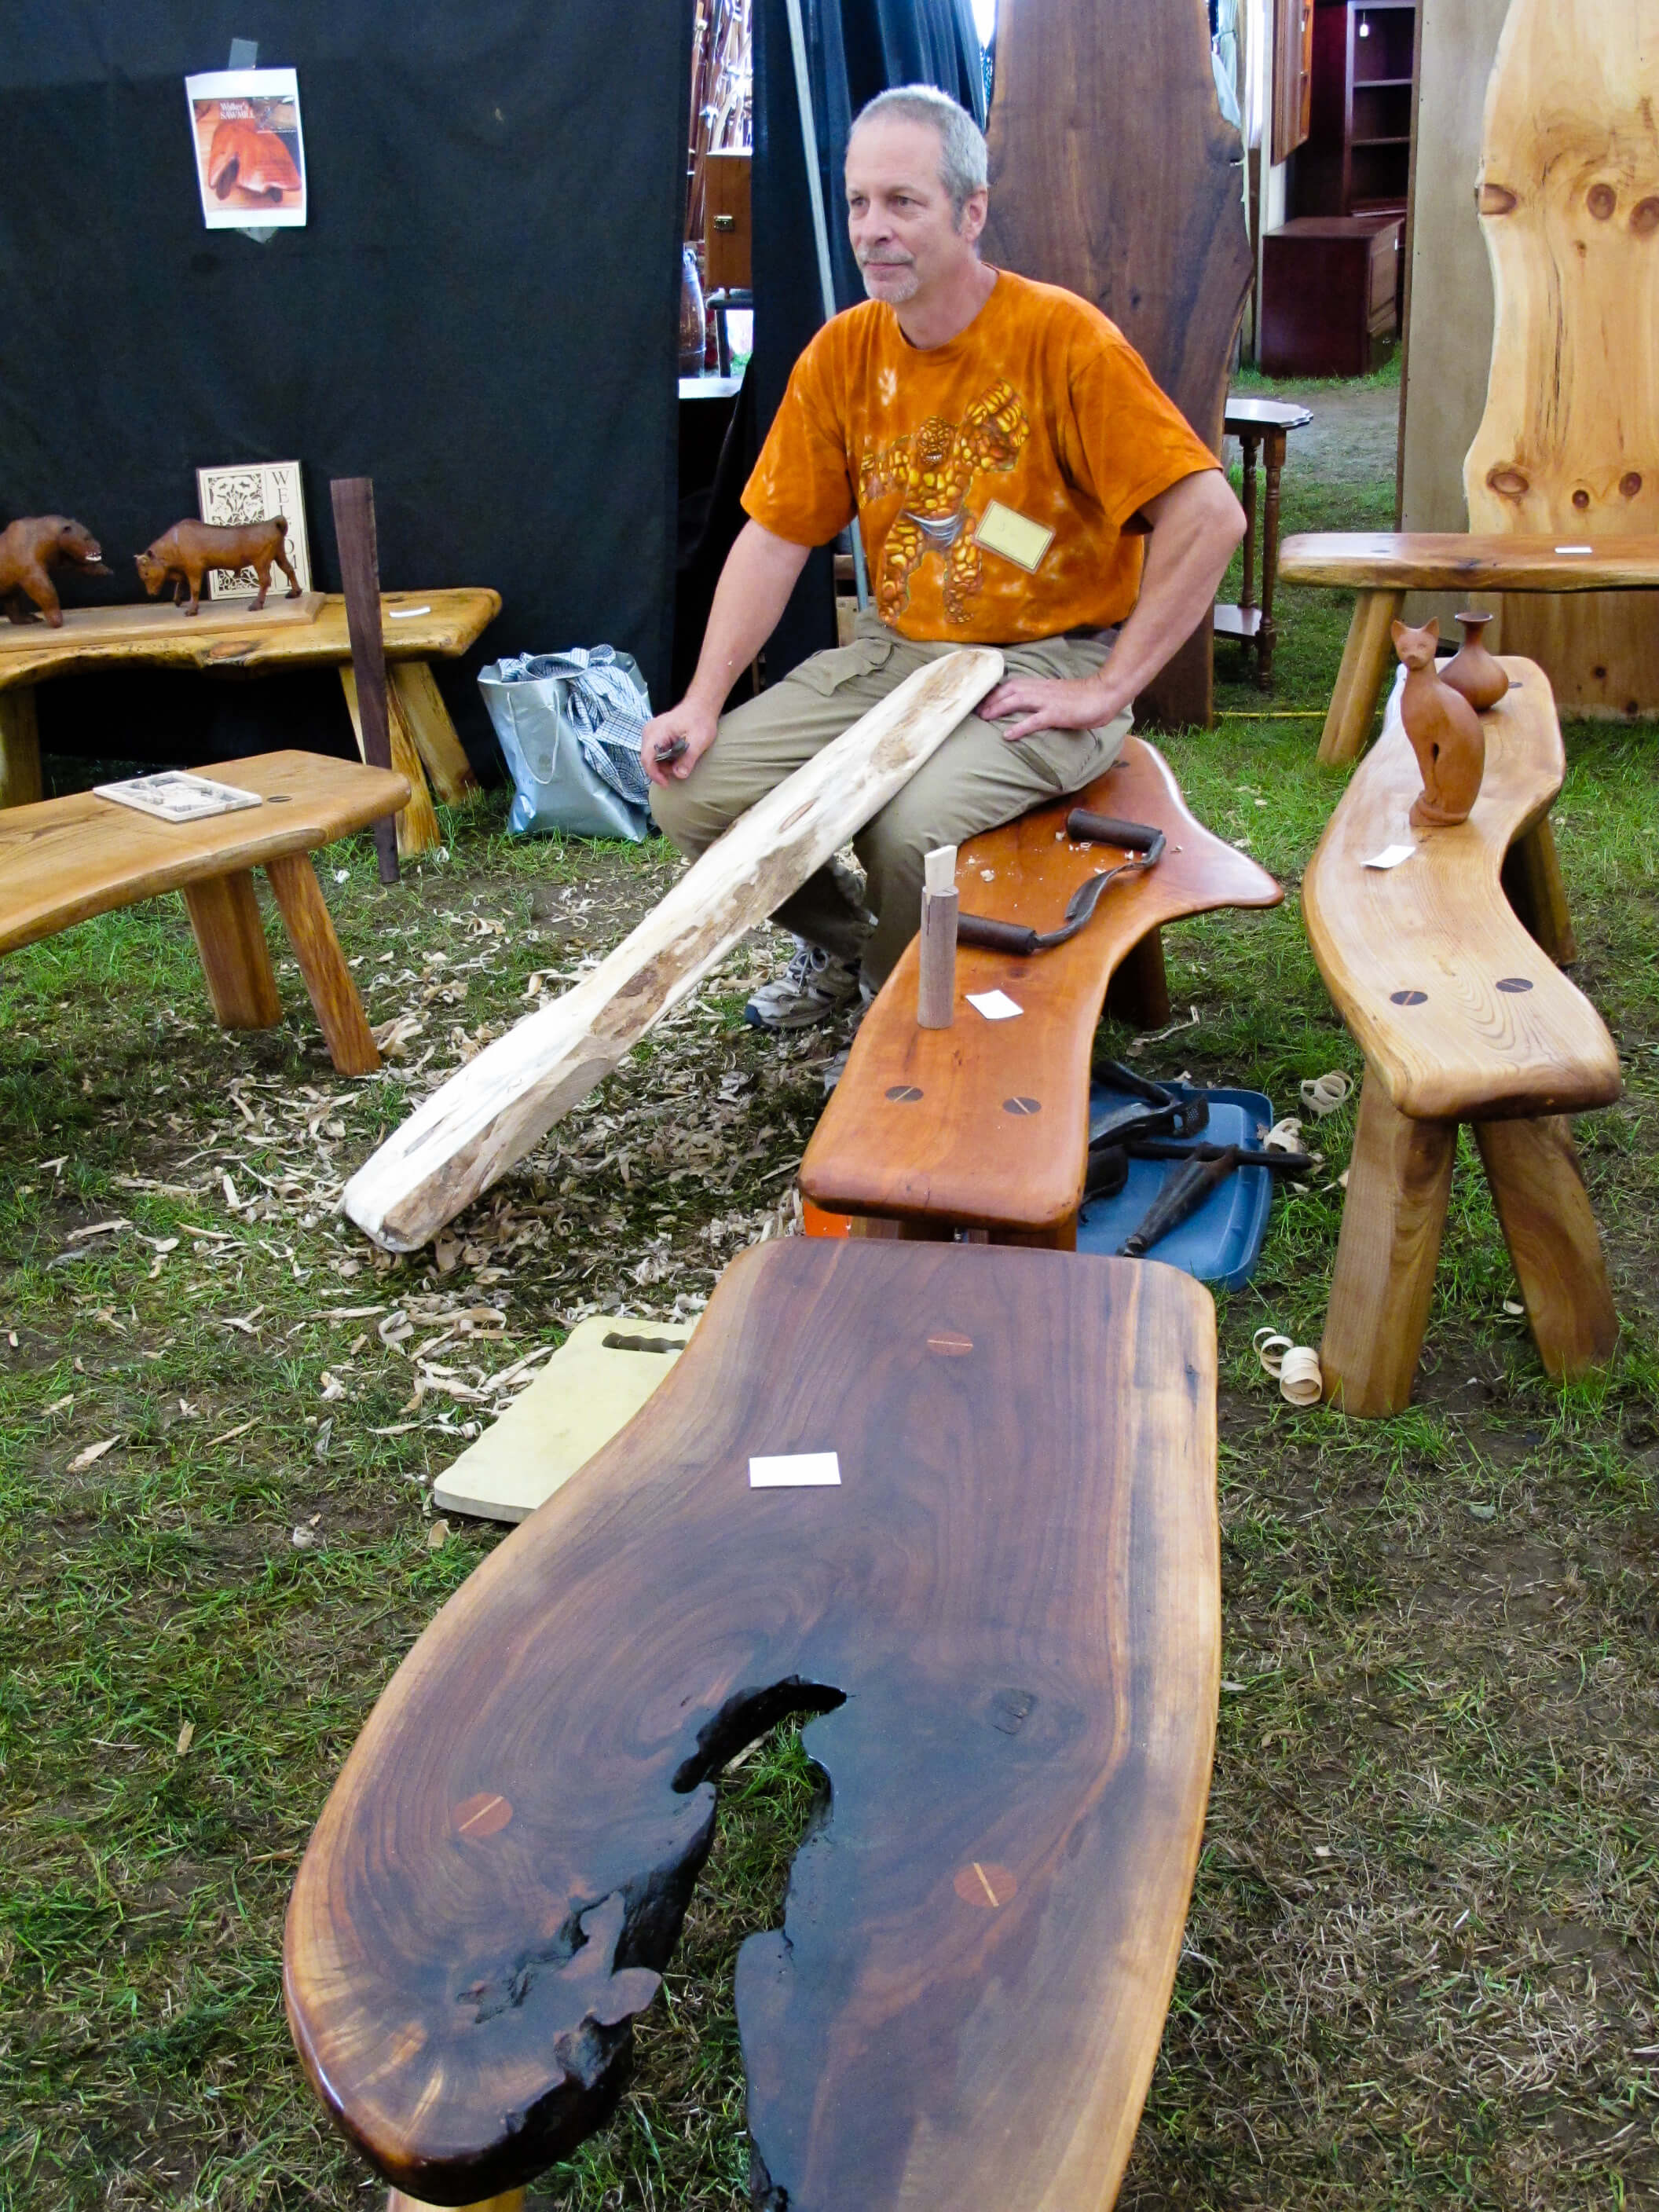 Handmade bench and table demonstration at the Woodstock-New Paltz Art & Crafts Fair